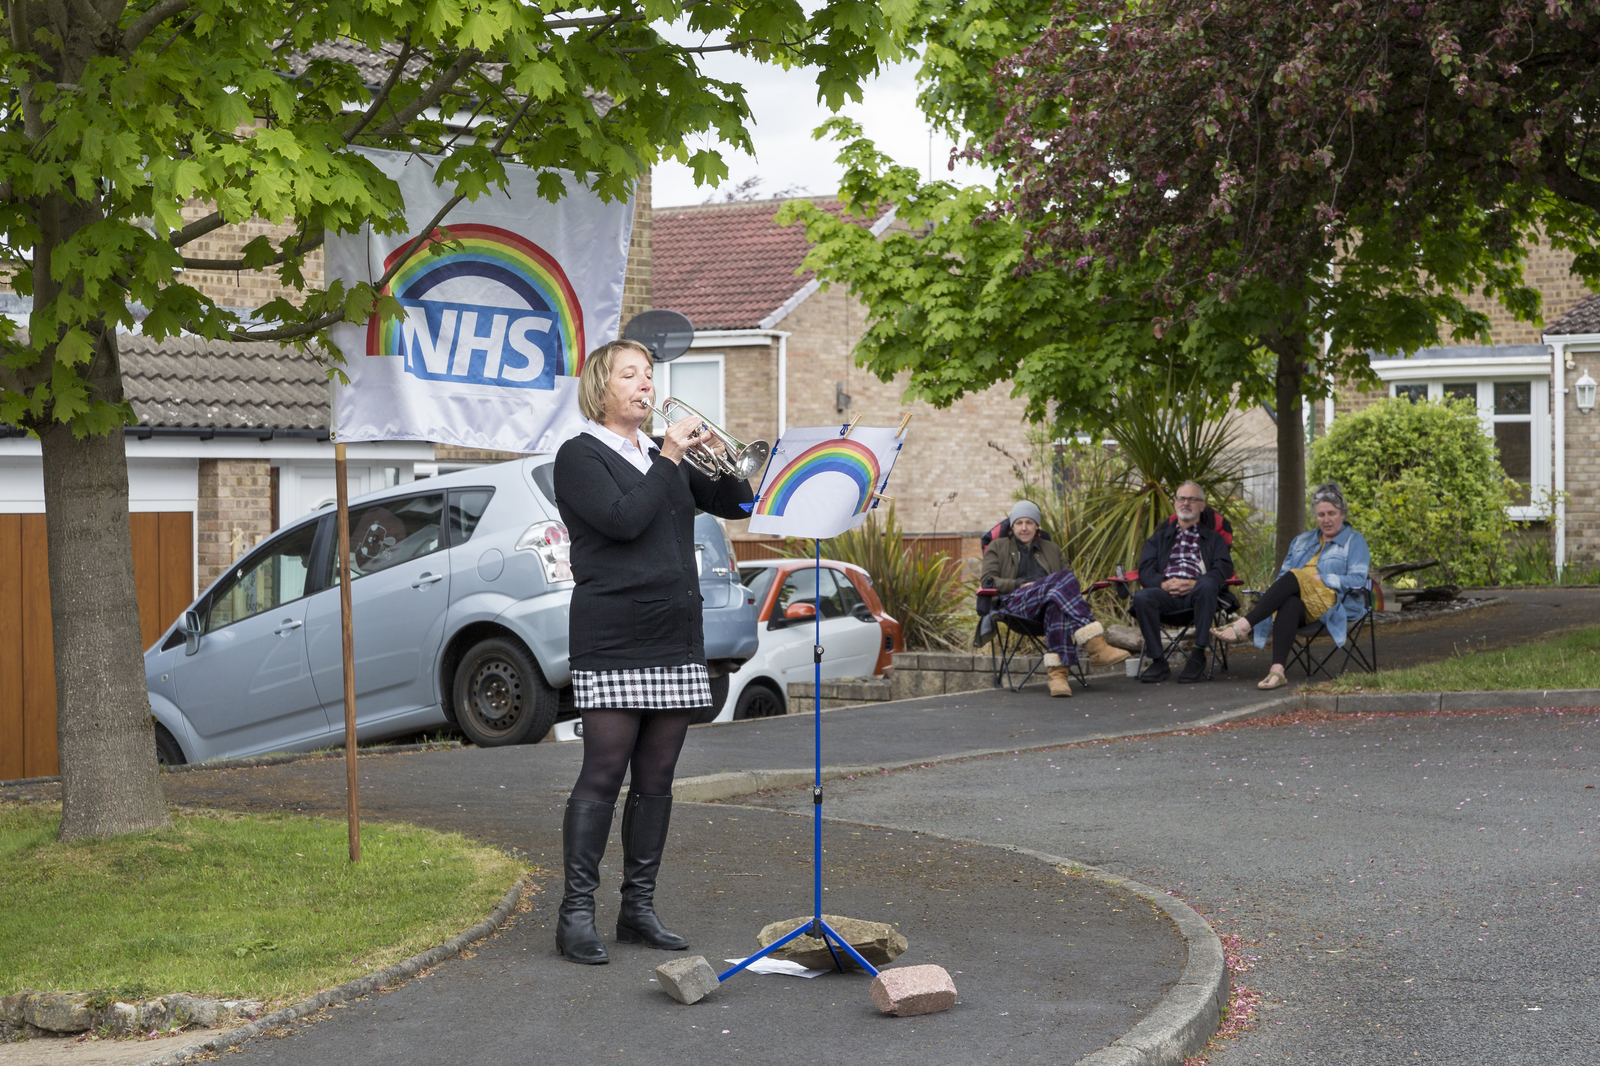 7 May 2020: Elizabeth Bailey playing hymns in the street in Shotley Bridge